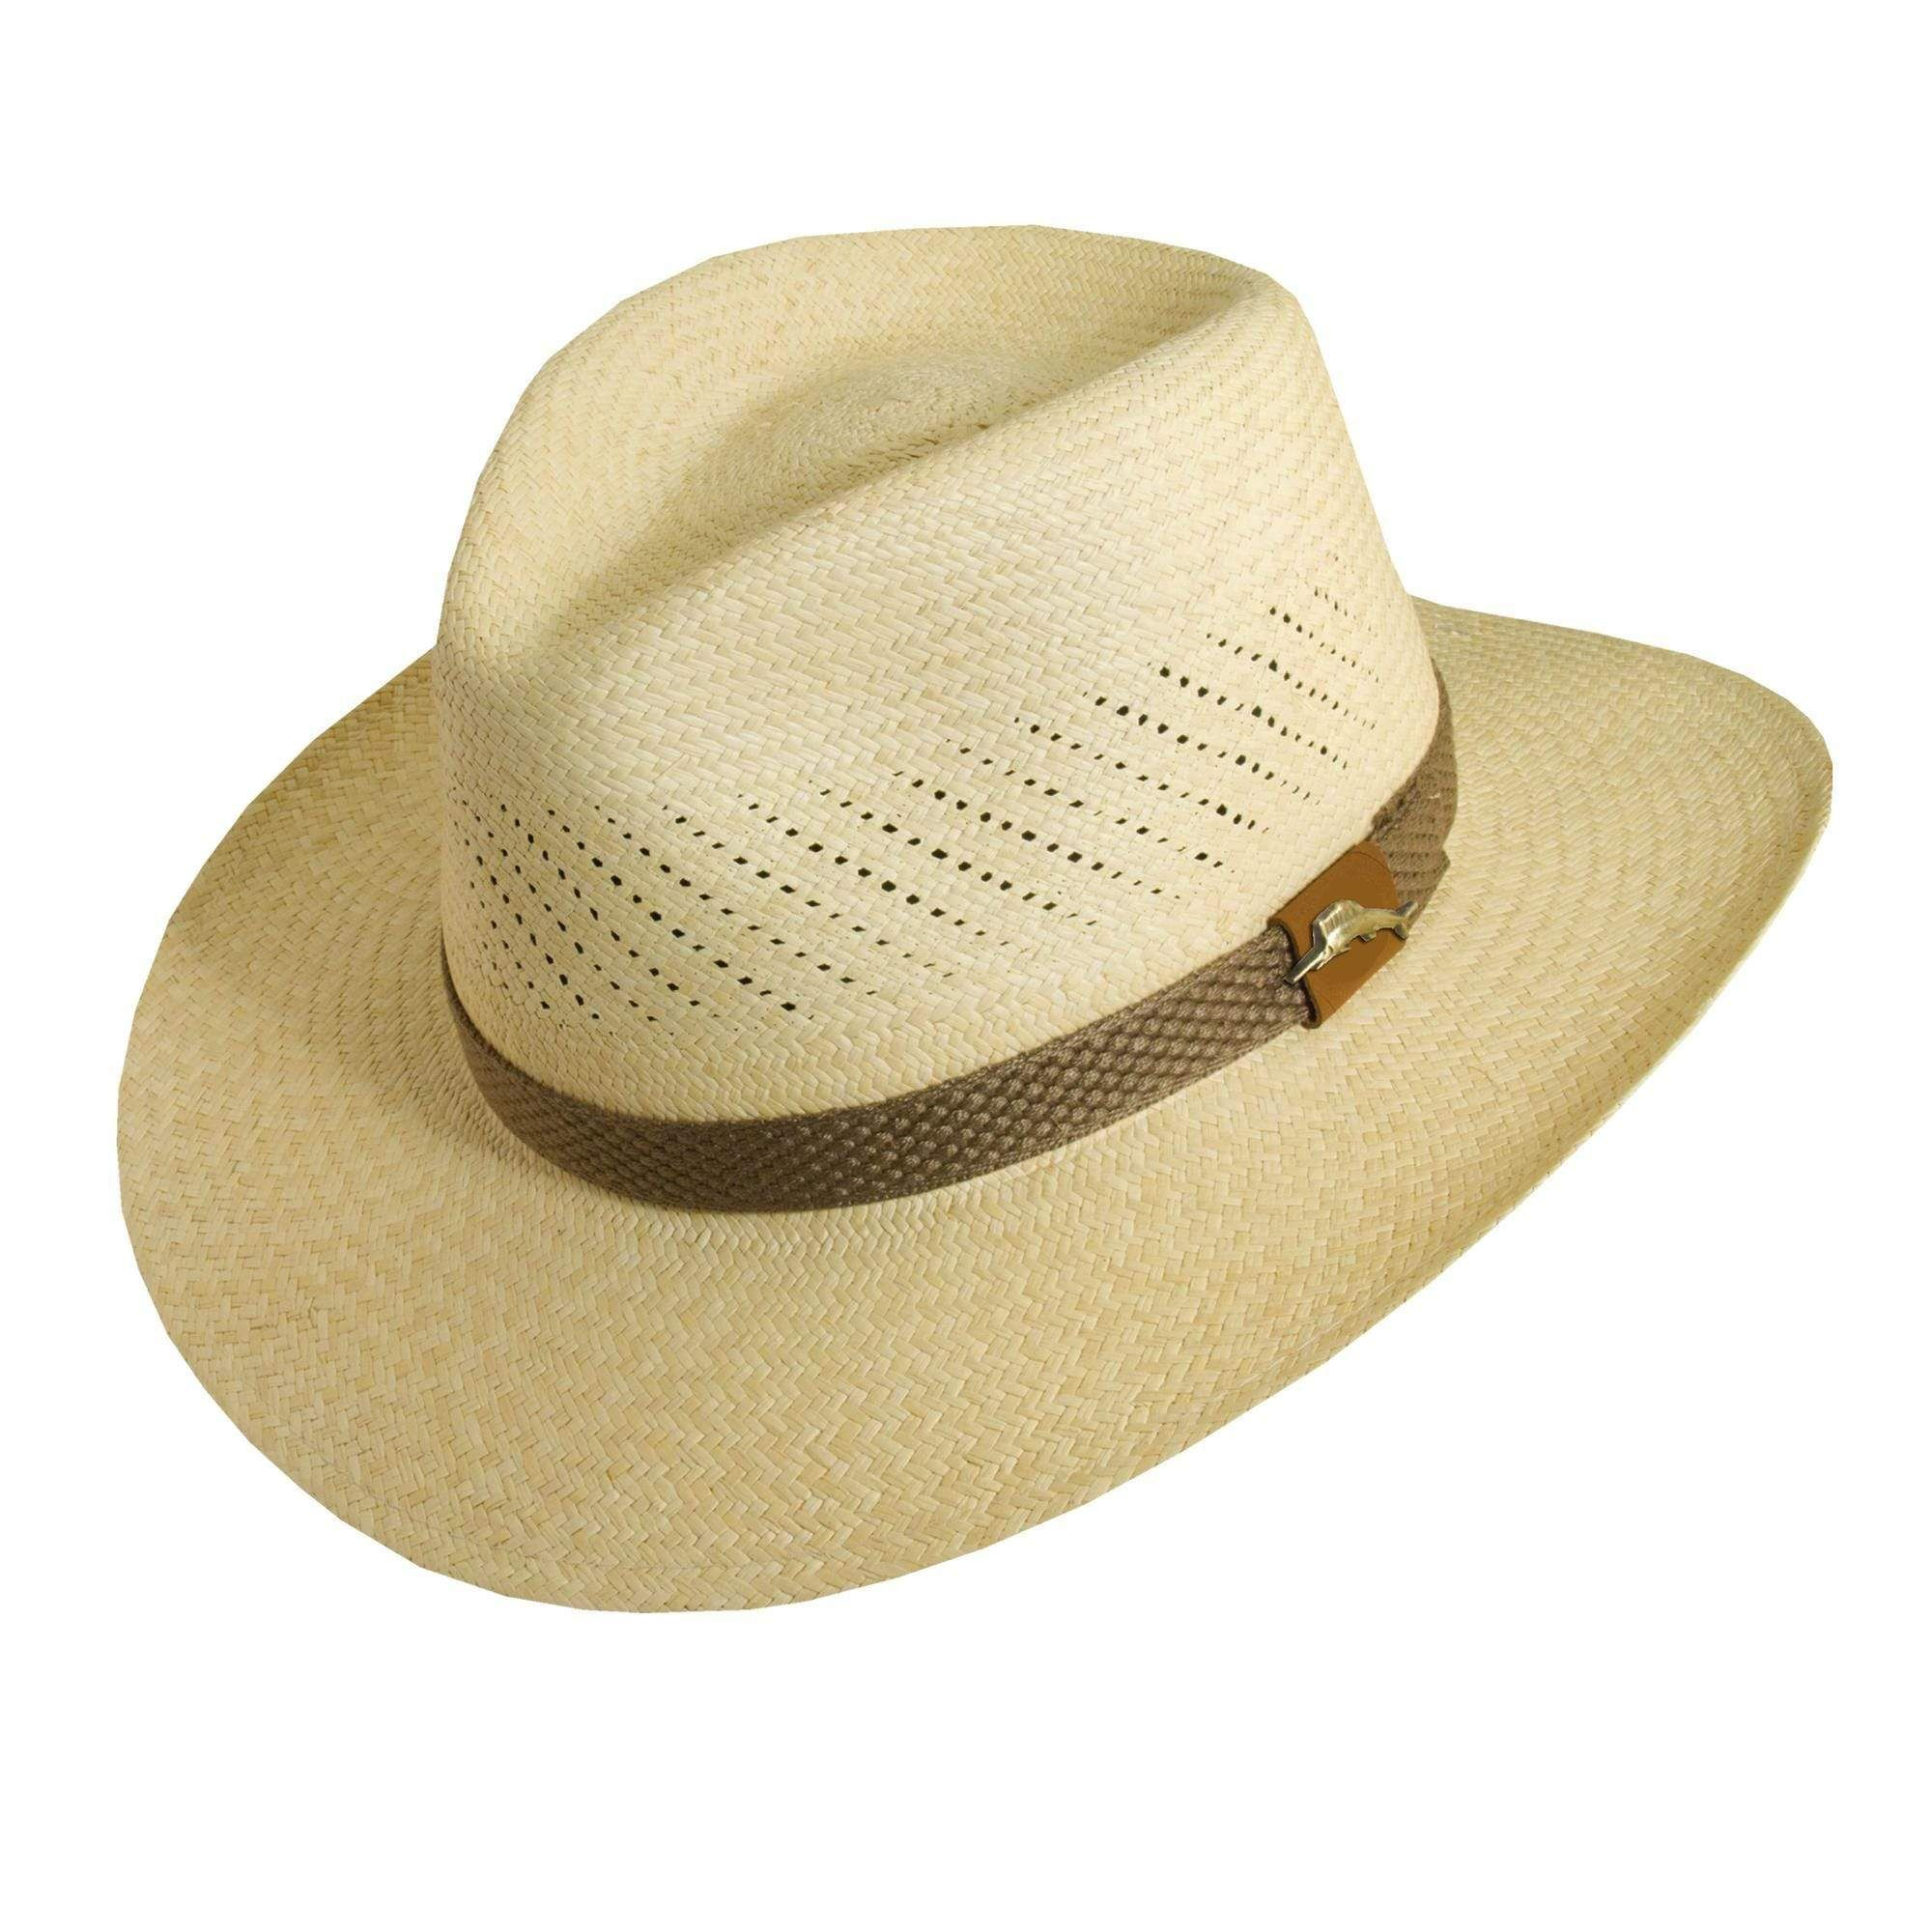 Slim jos fedora. Follow up - H&M 4 boys - Alina Ceusan